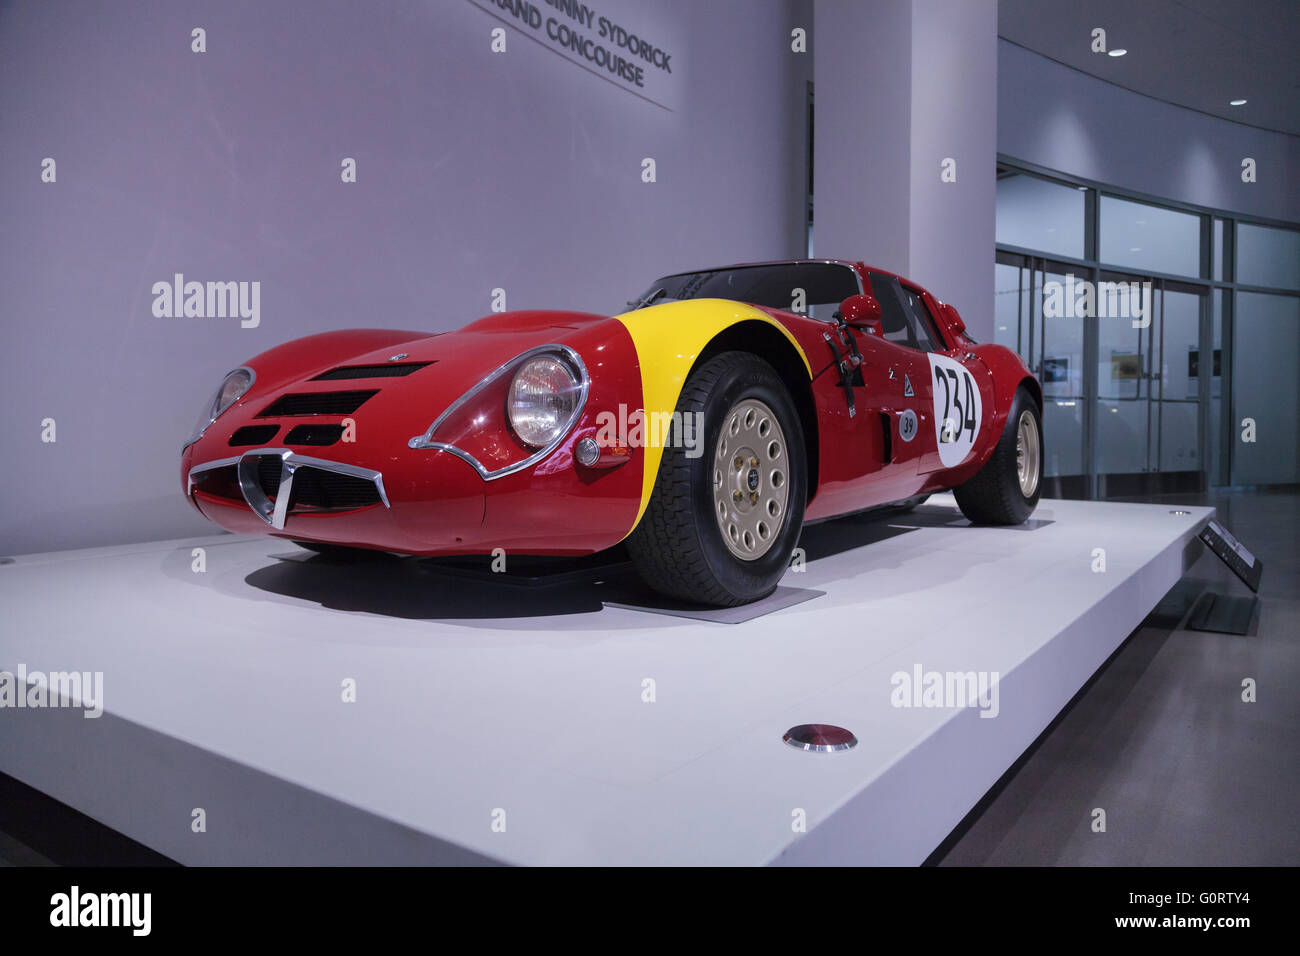 1967 alfa romeo guilia tz2 is part of the collection of david stock photo royalty free image. Black Bedroom Furniture Sets. Home Design Ideas